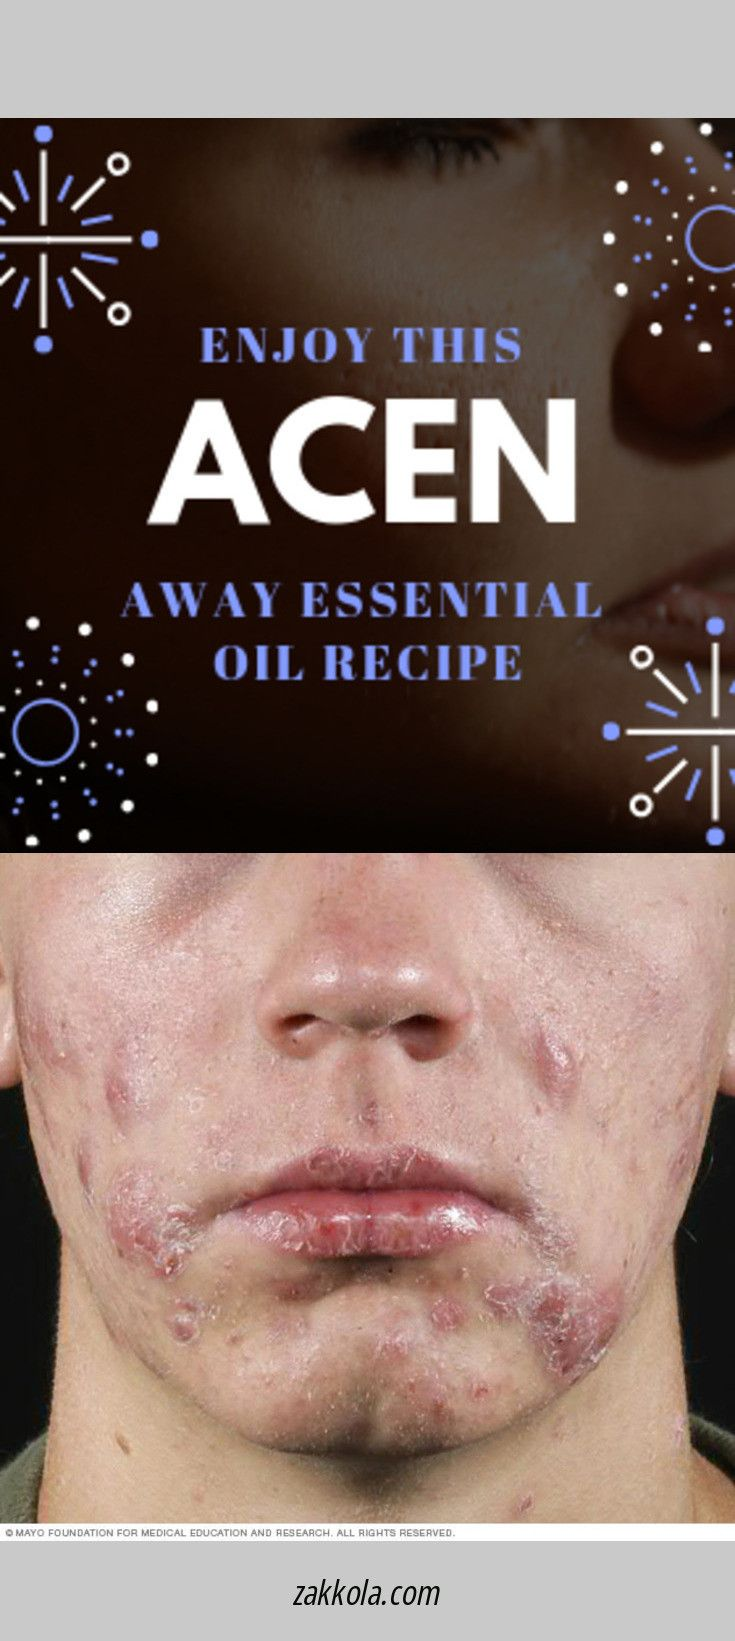 Read more about acne. Simply click here to get more information